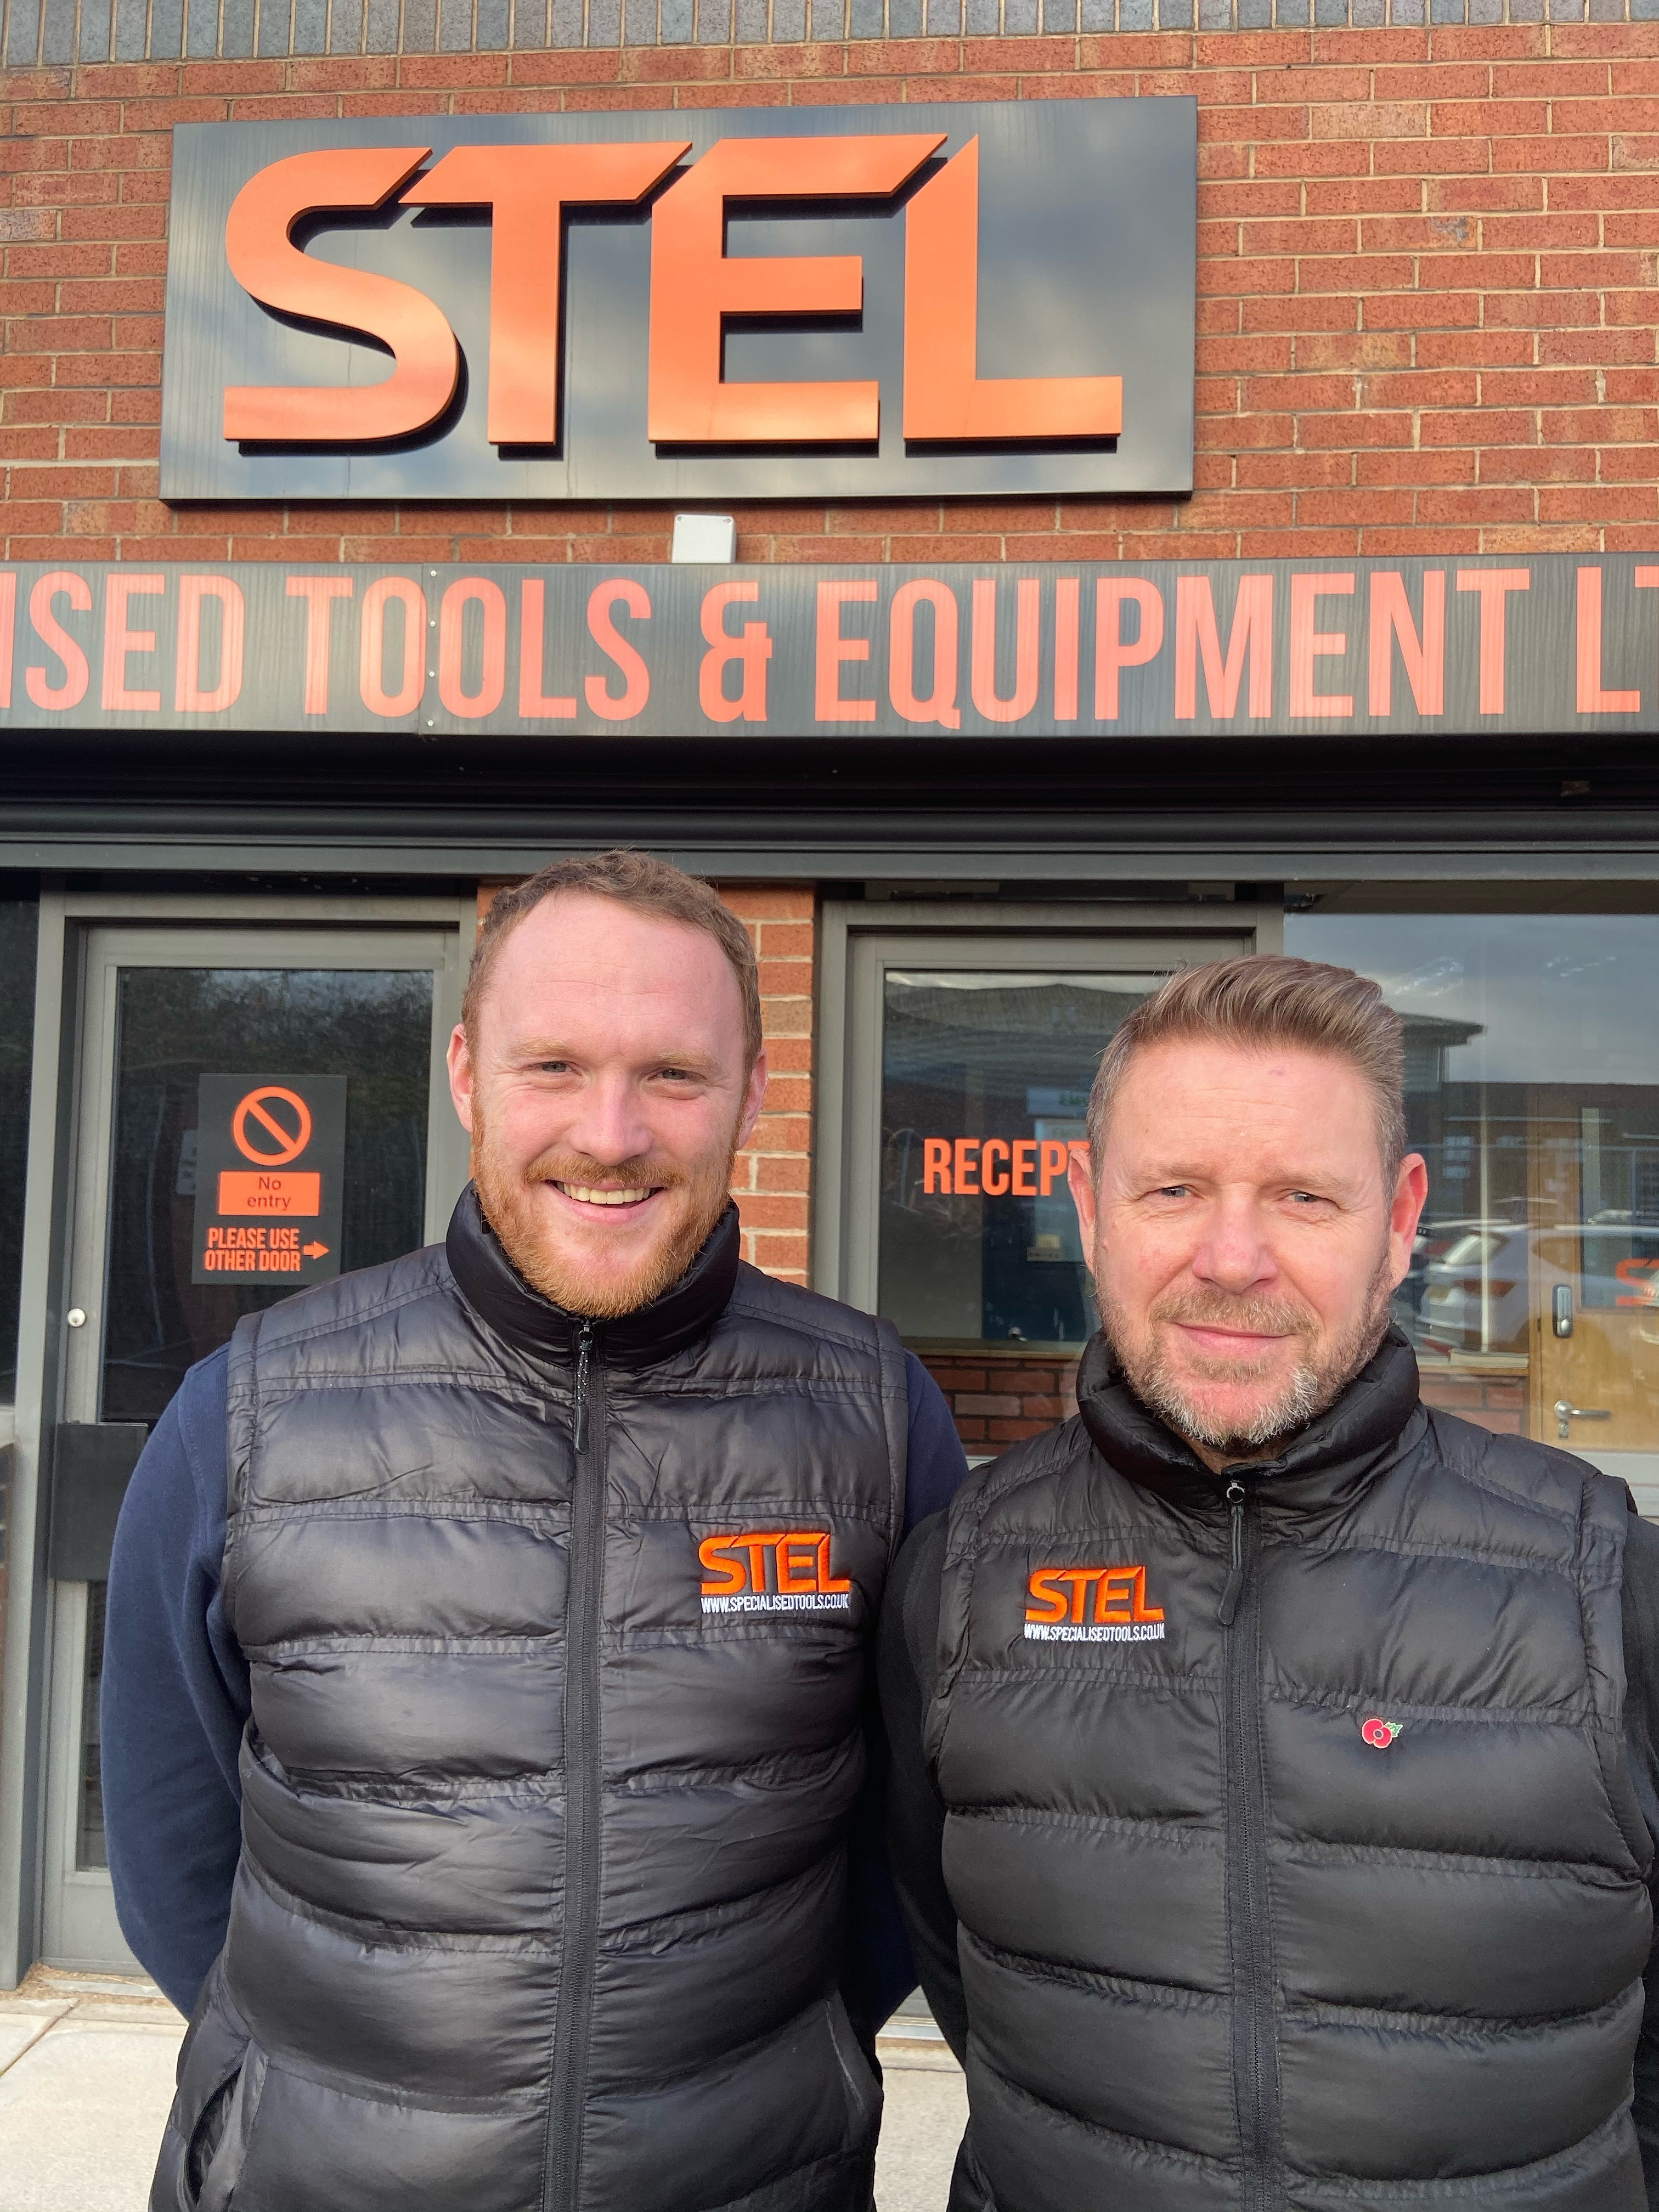 Sheffield Tools Business Owner Celebrates One-Year Anniversary